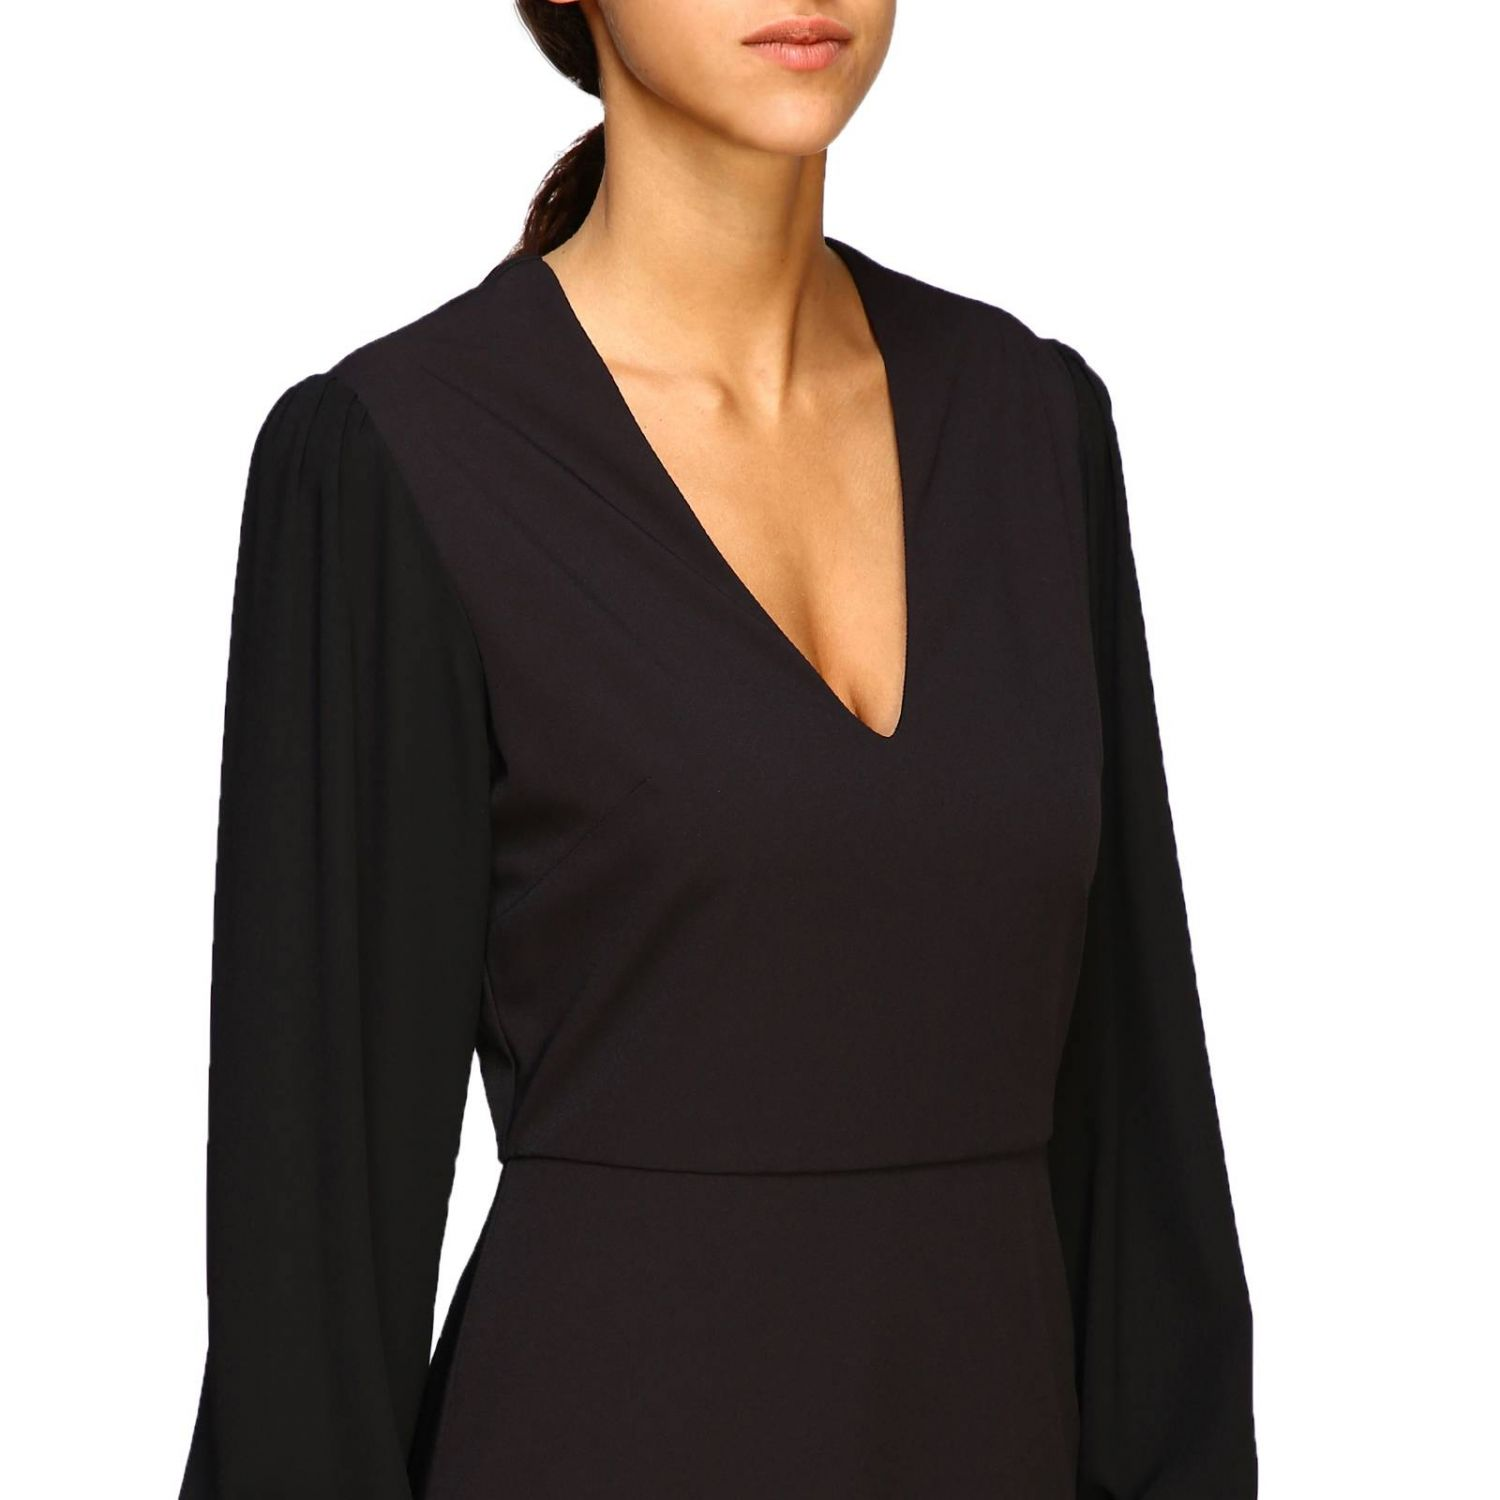 Robes Be Blumarine: Robes femme Be Blumarine noir 5